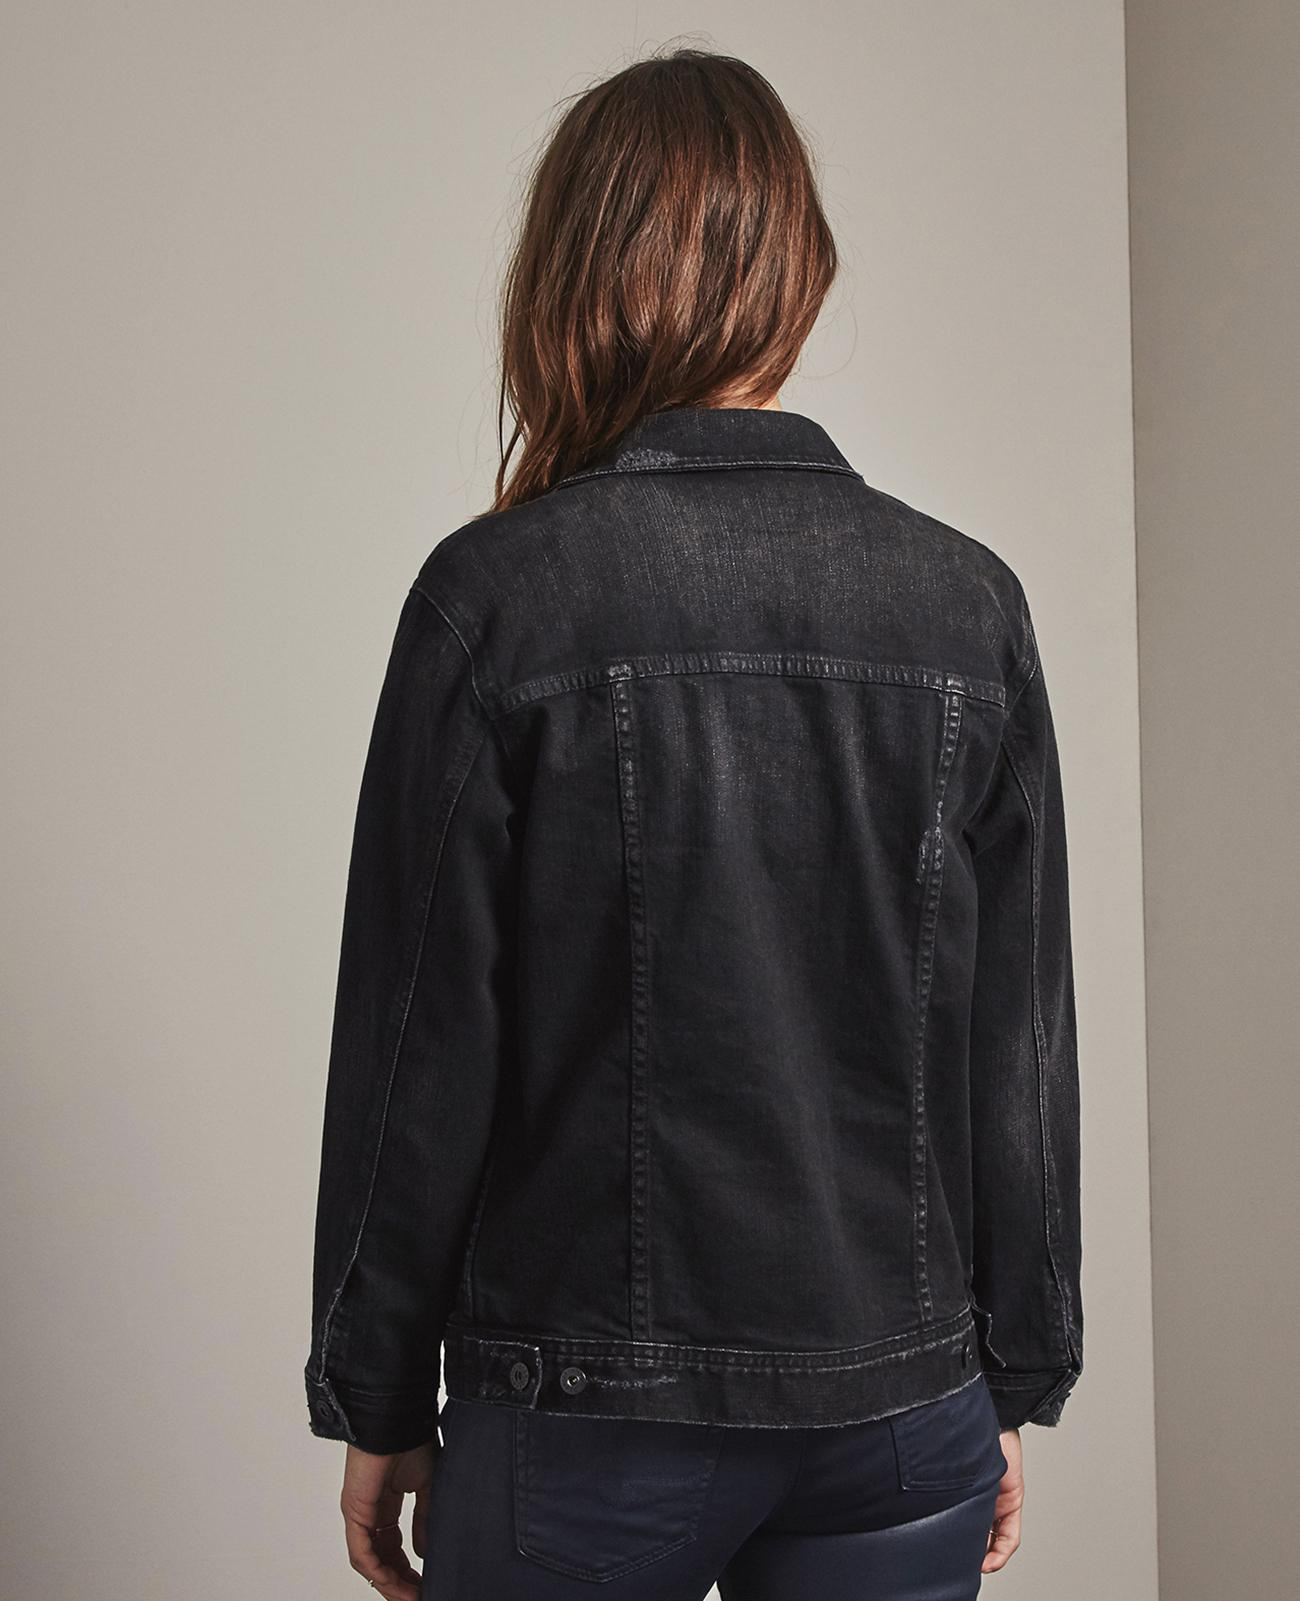 The Nancy Jacket